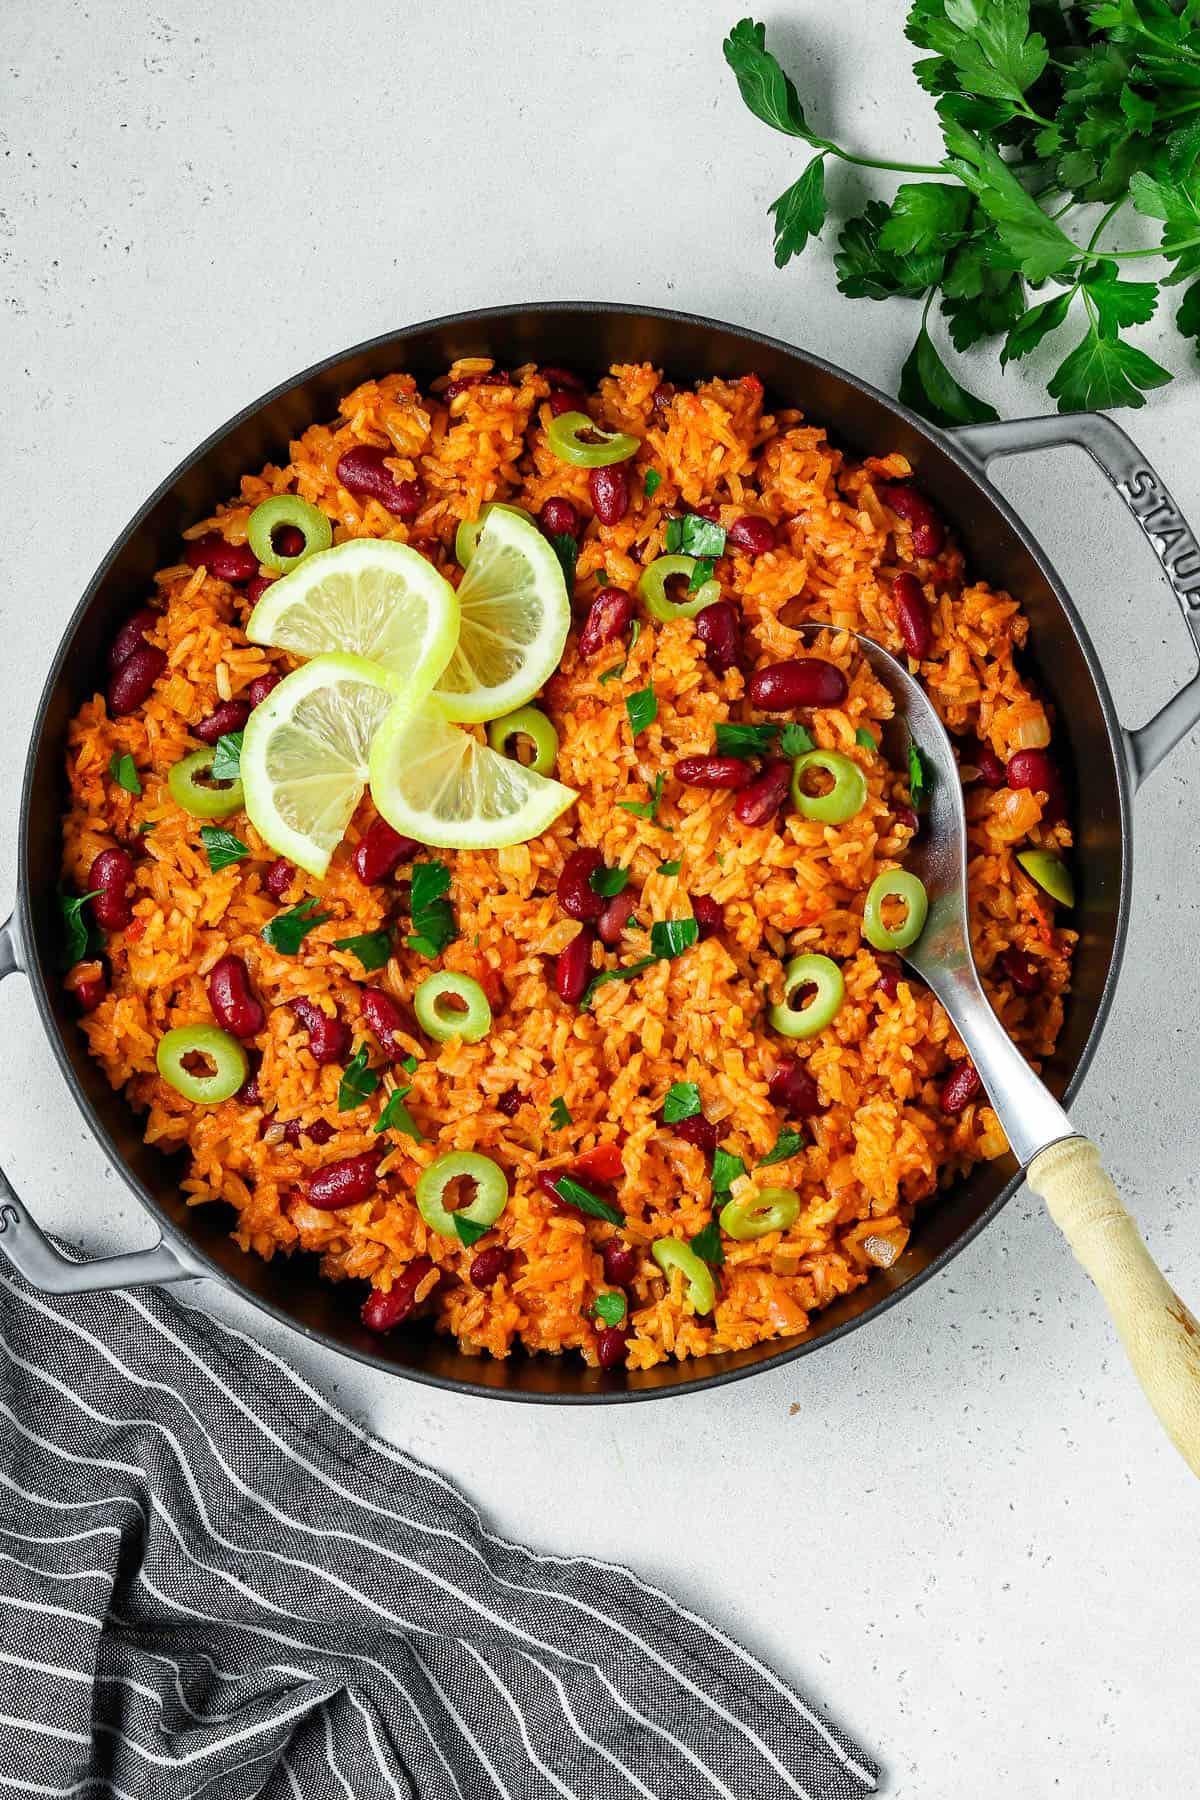 Overhead view of fully cooked rice and beans in a gray pan. Lemon wedges on top.